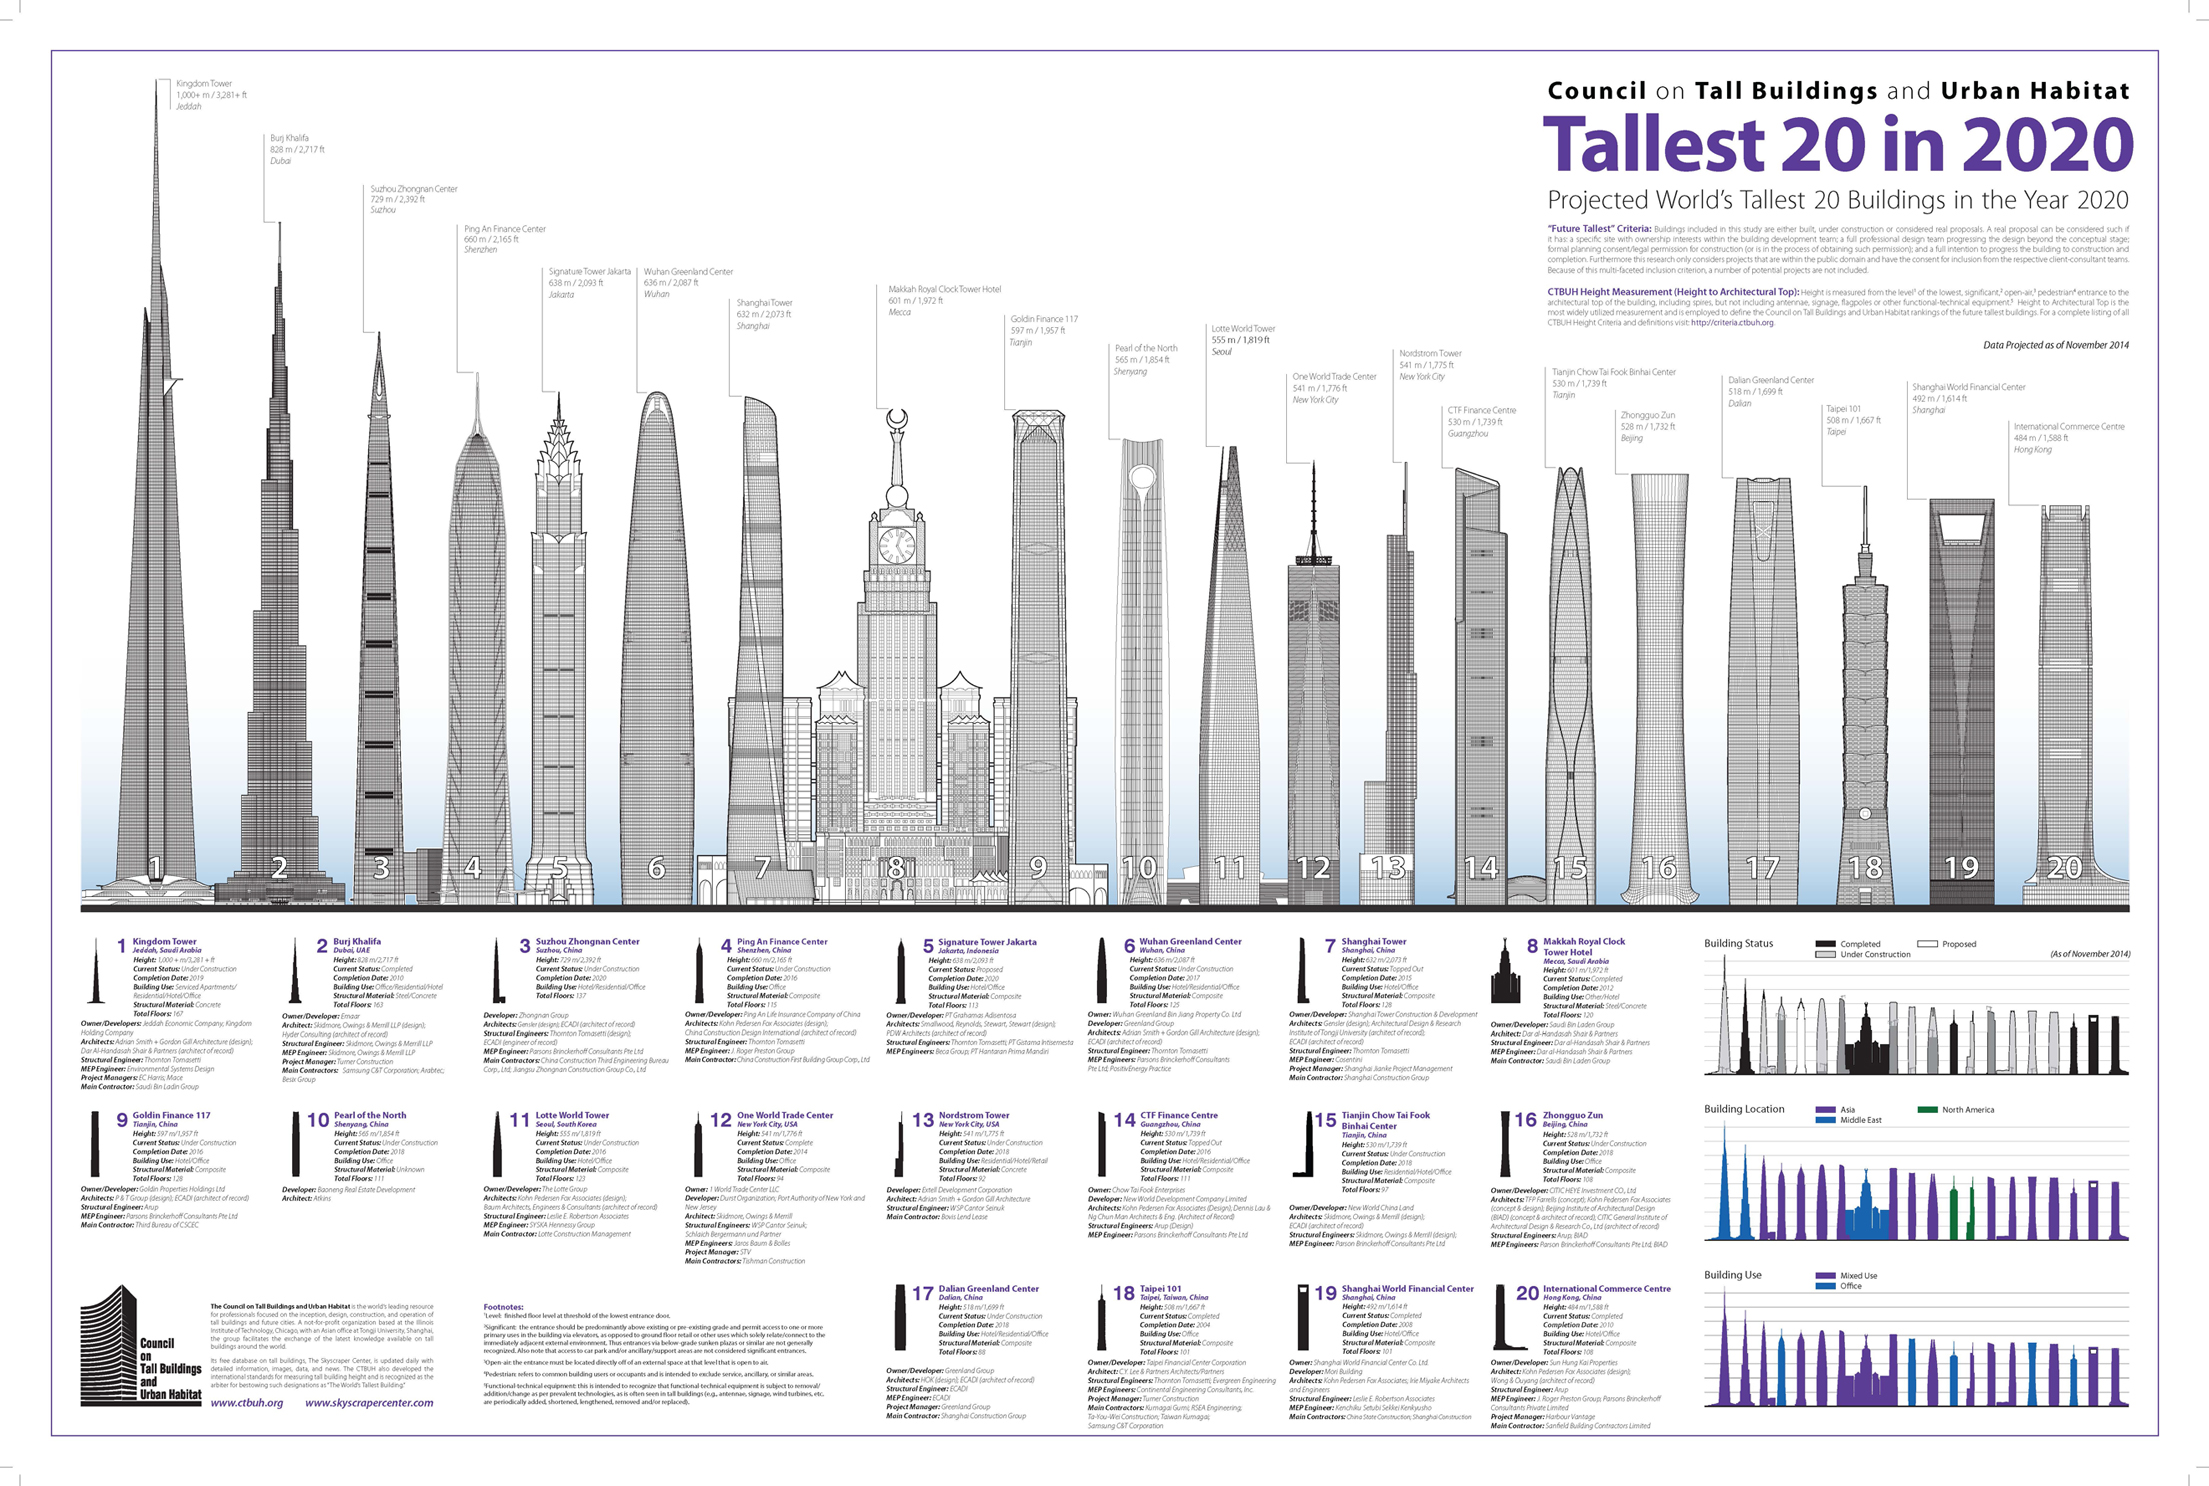 For context, here's a diagram of the predicted world's 20 tallest buildings in the year 2014. Click to enlarge. (Courtesy of the Council on Tall Buildings and Urban Habitat)